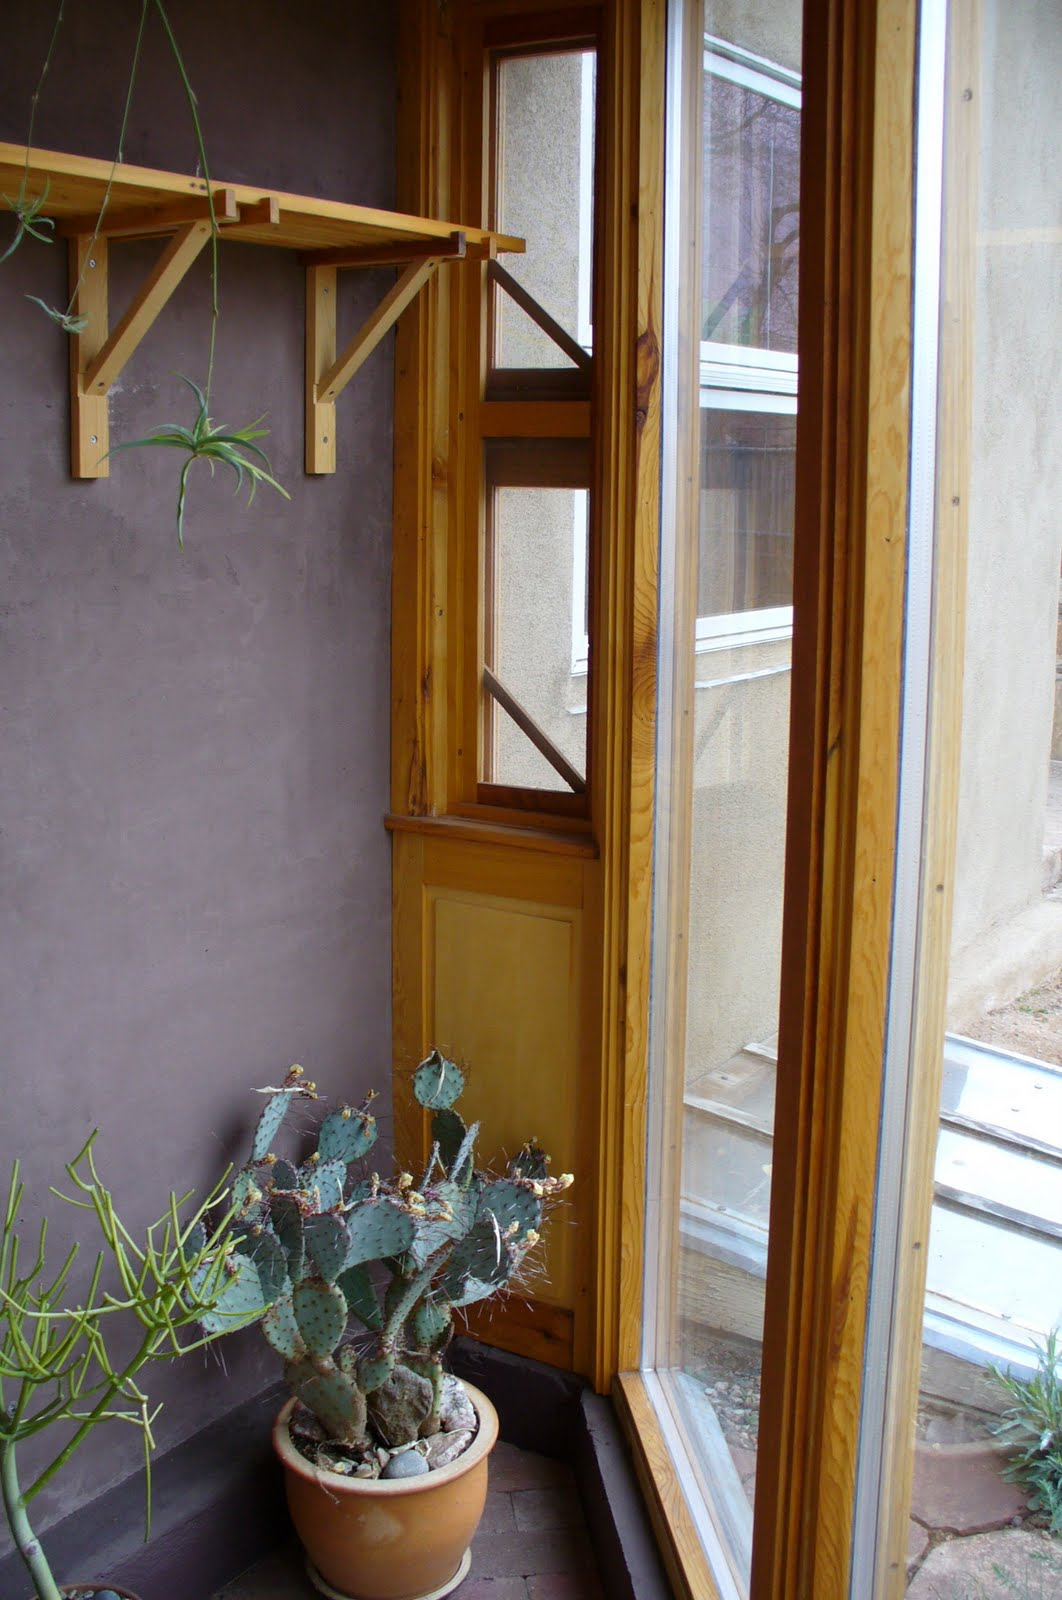 greenhouse kitchen window sink drain pipe alt build blog passive solar 2 trombe walls and a